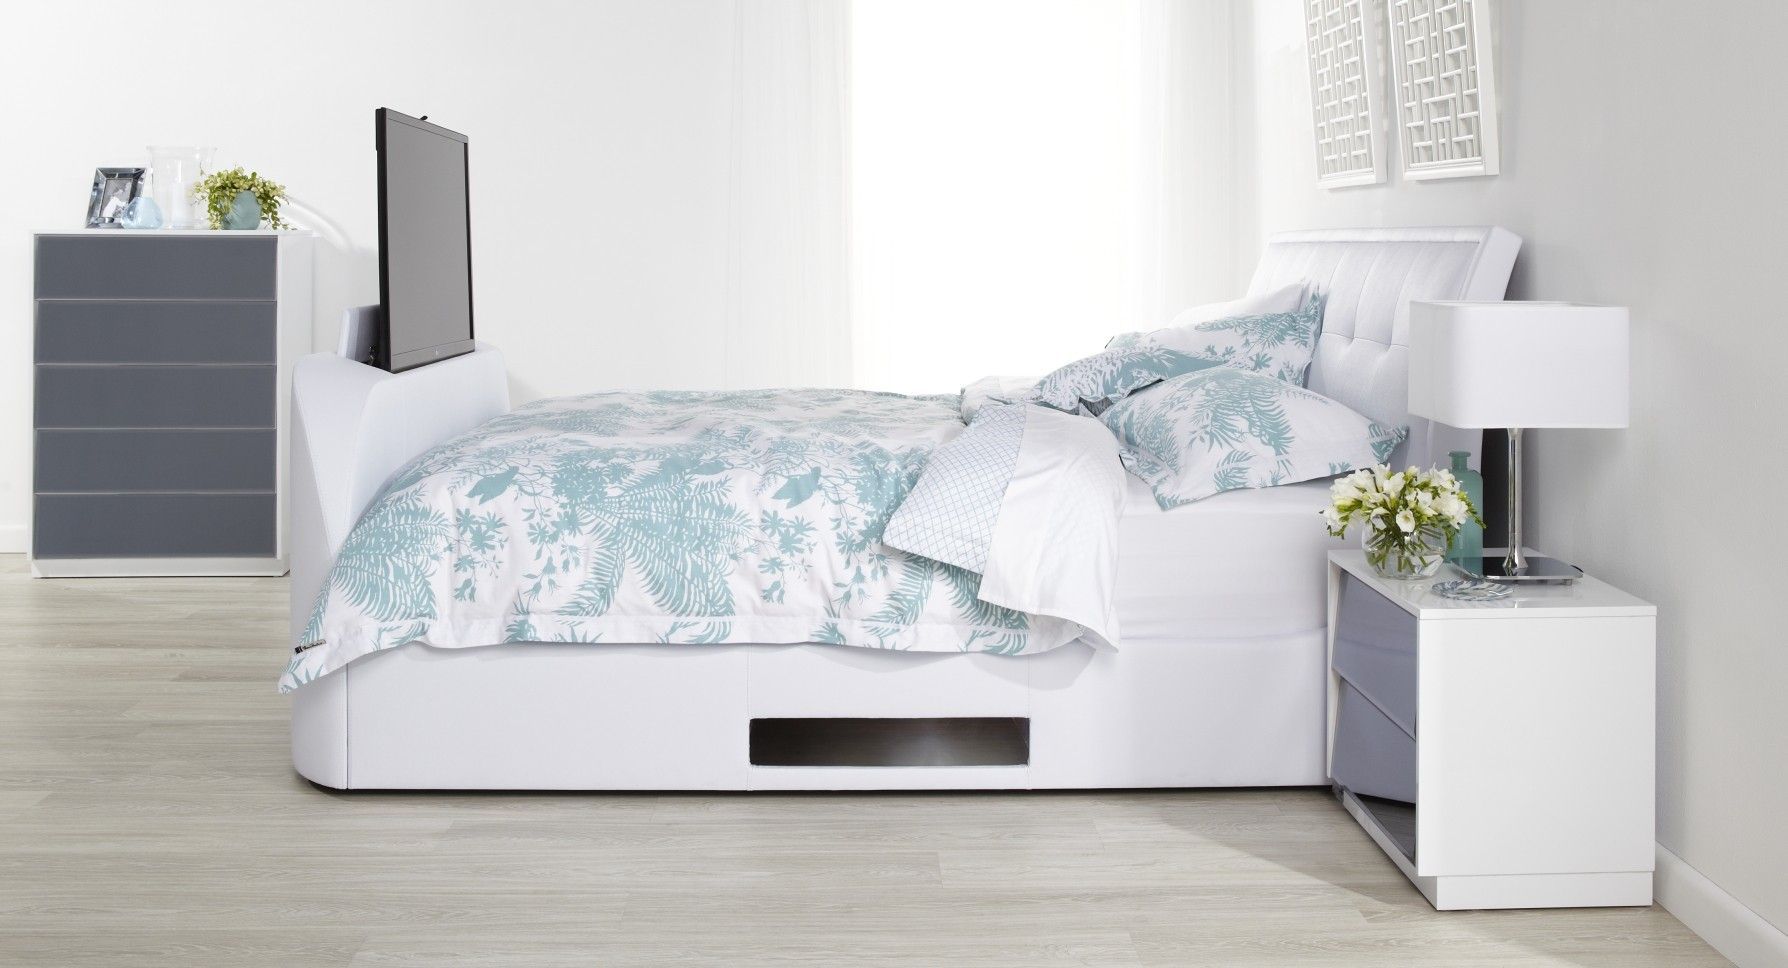 Accent TV Bed with 40  LED screen TV with DVD tray  linen in pastel. Accent TV Bed with 40  LED screen TV with DVD tray  linen in